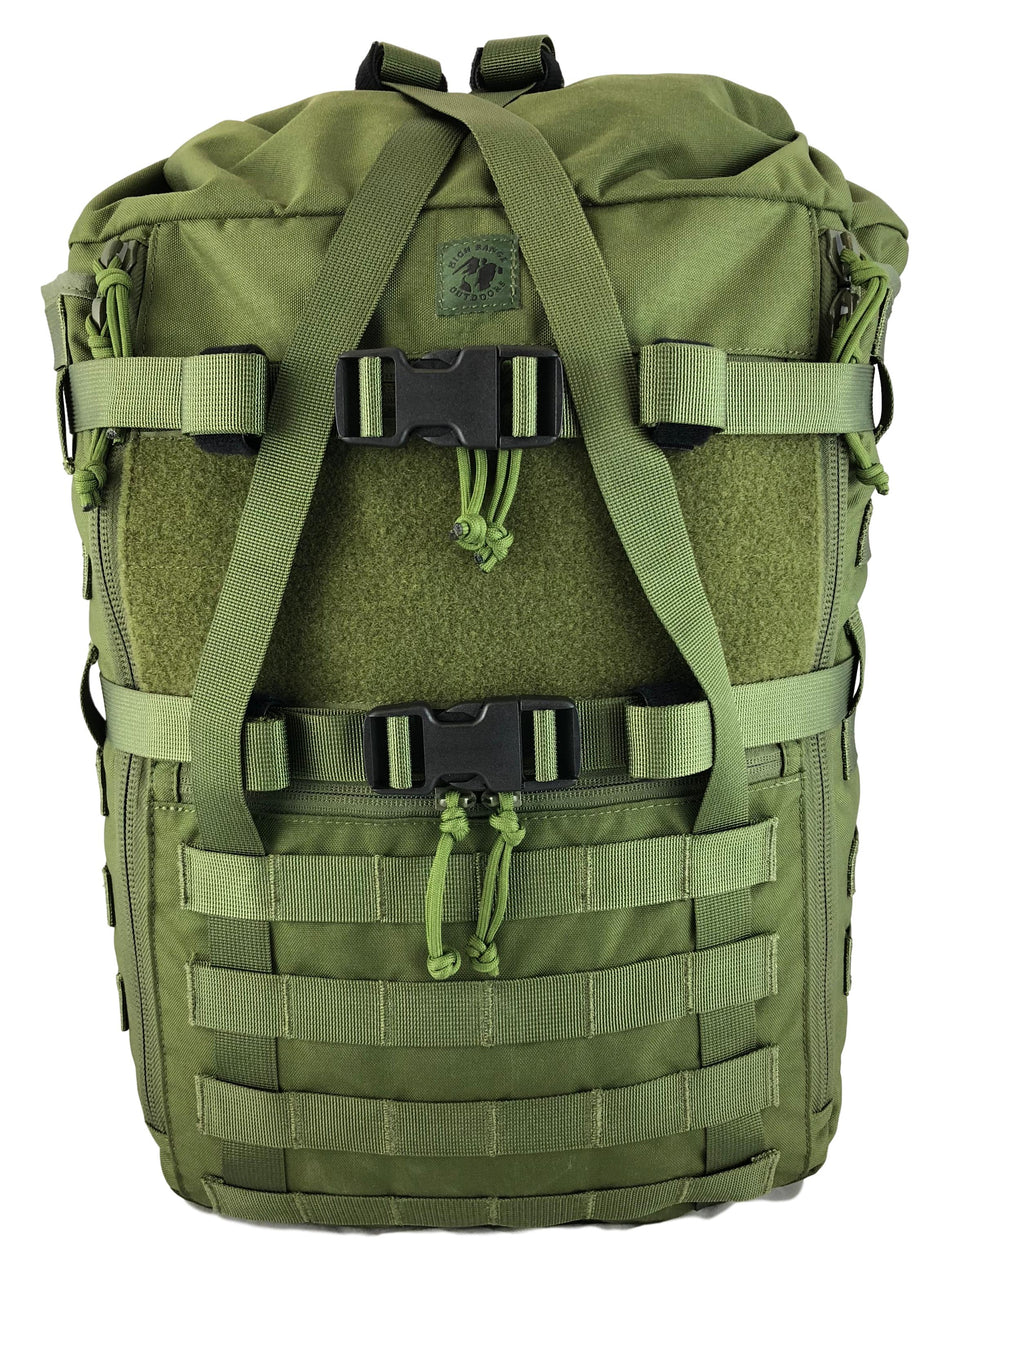 MR40 bushcraft backpack Australia front view